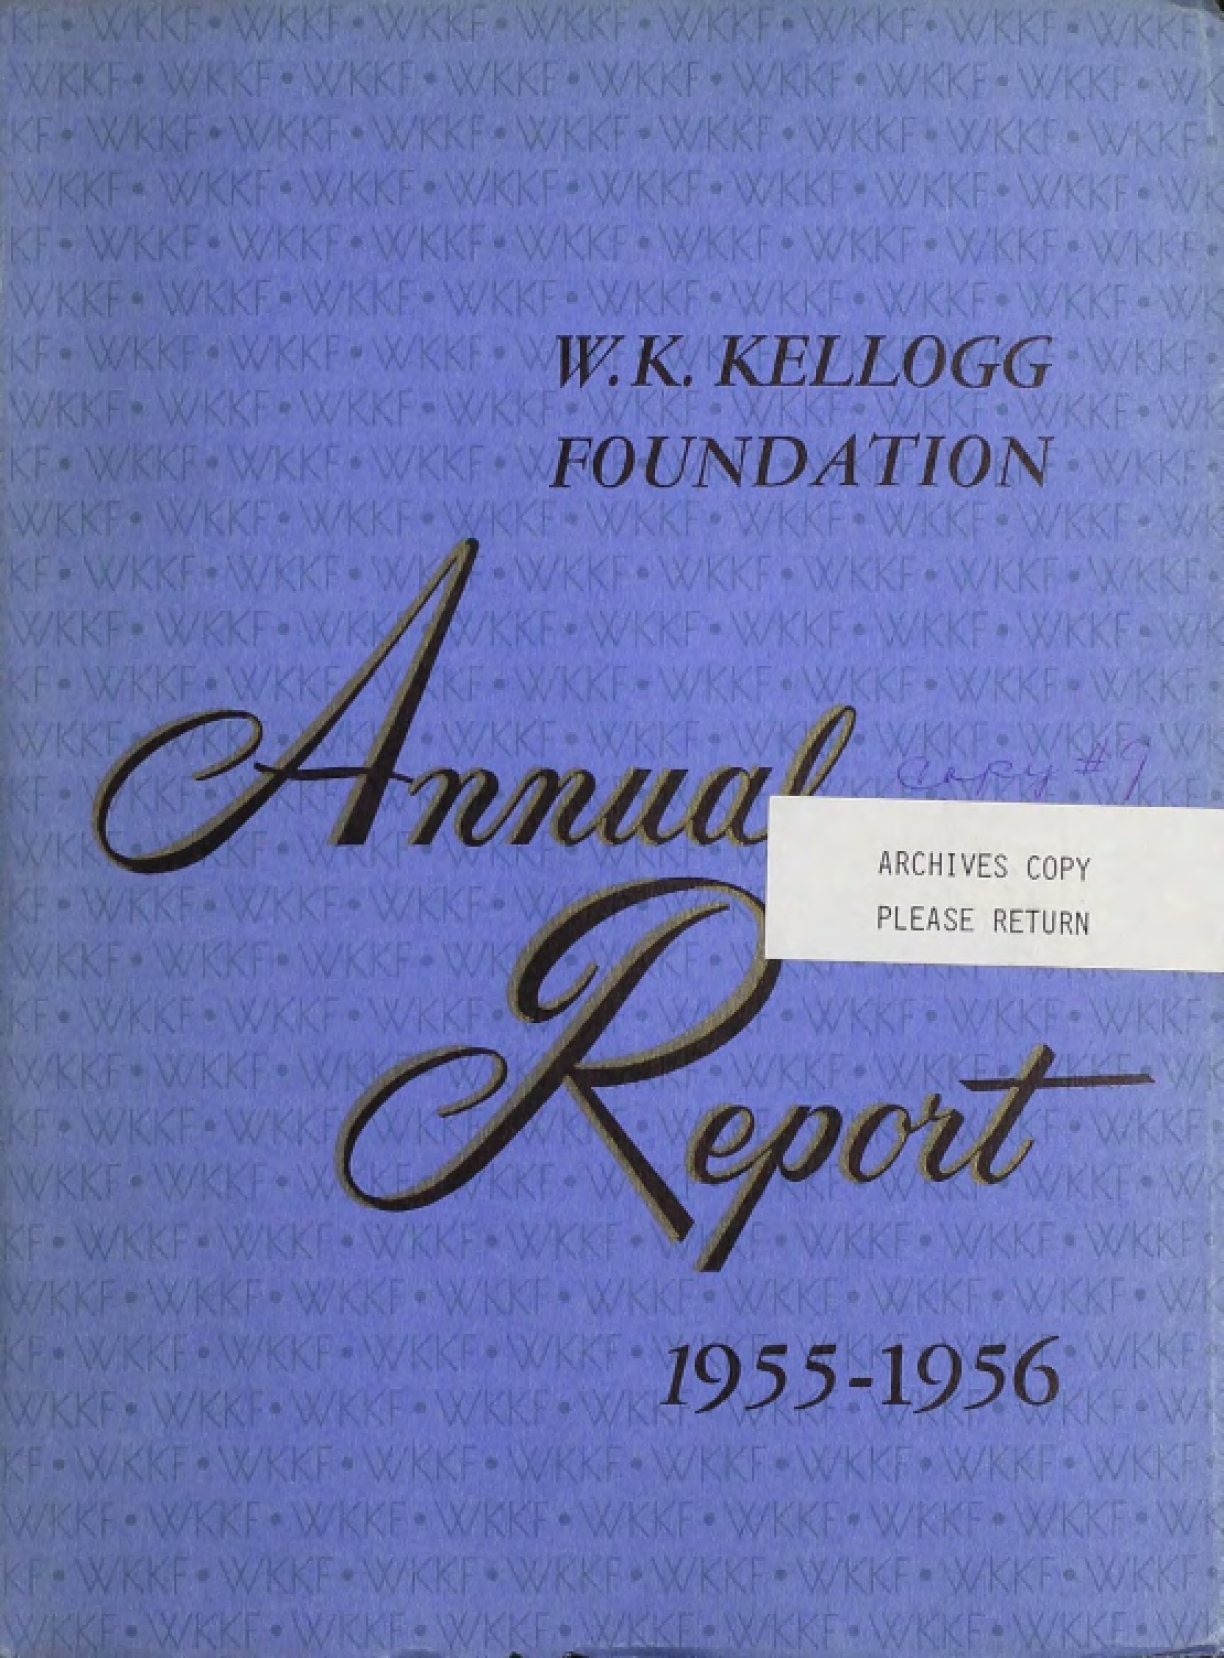 1955-1956 W.K. Kellogg Foundation Annual Report